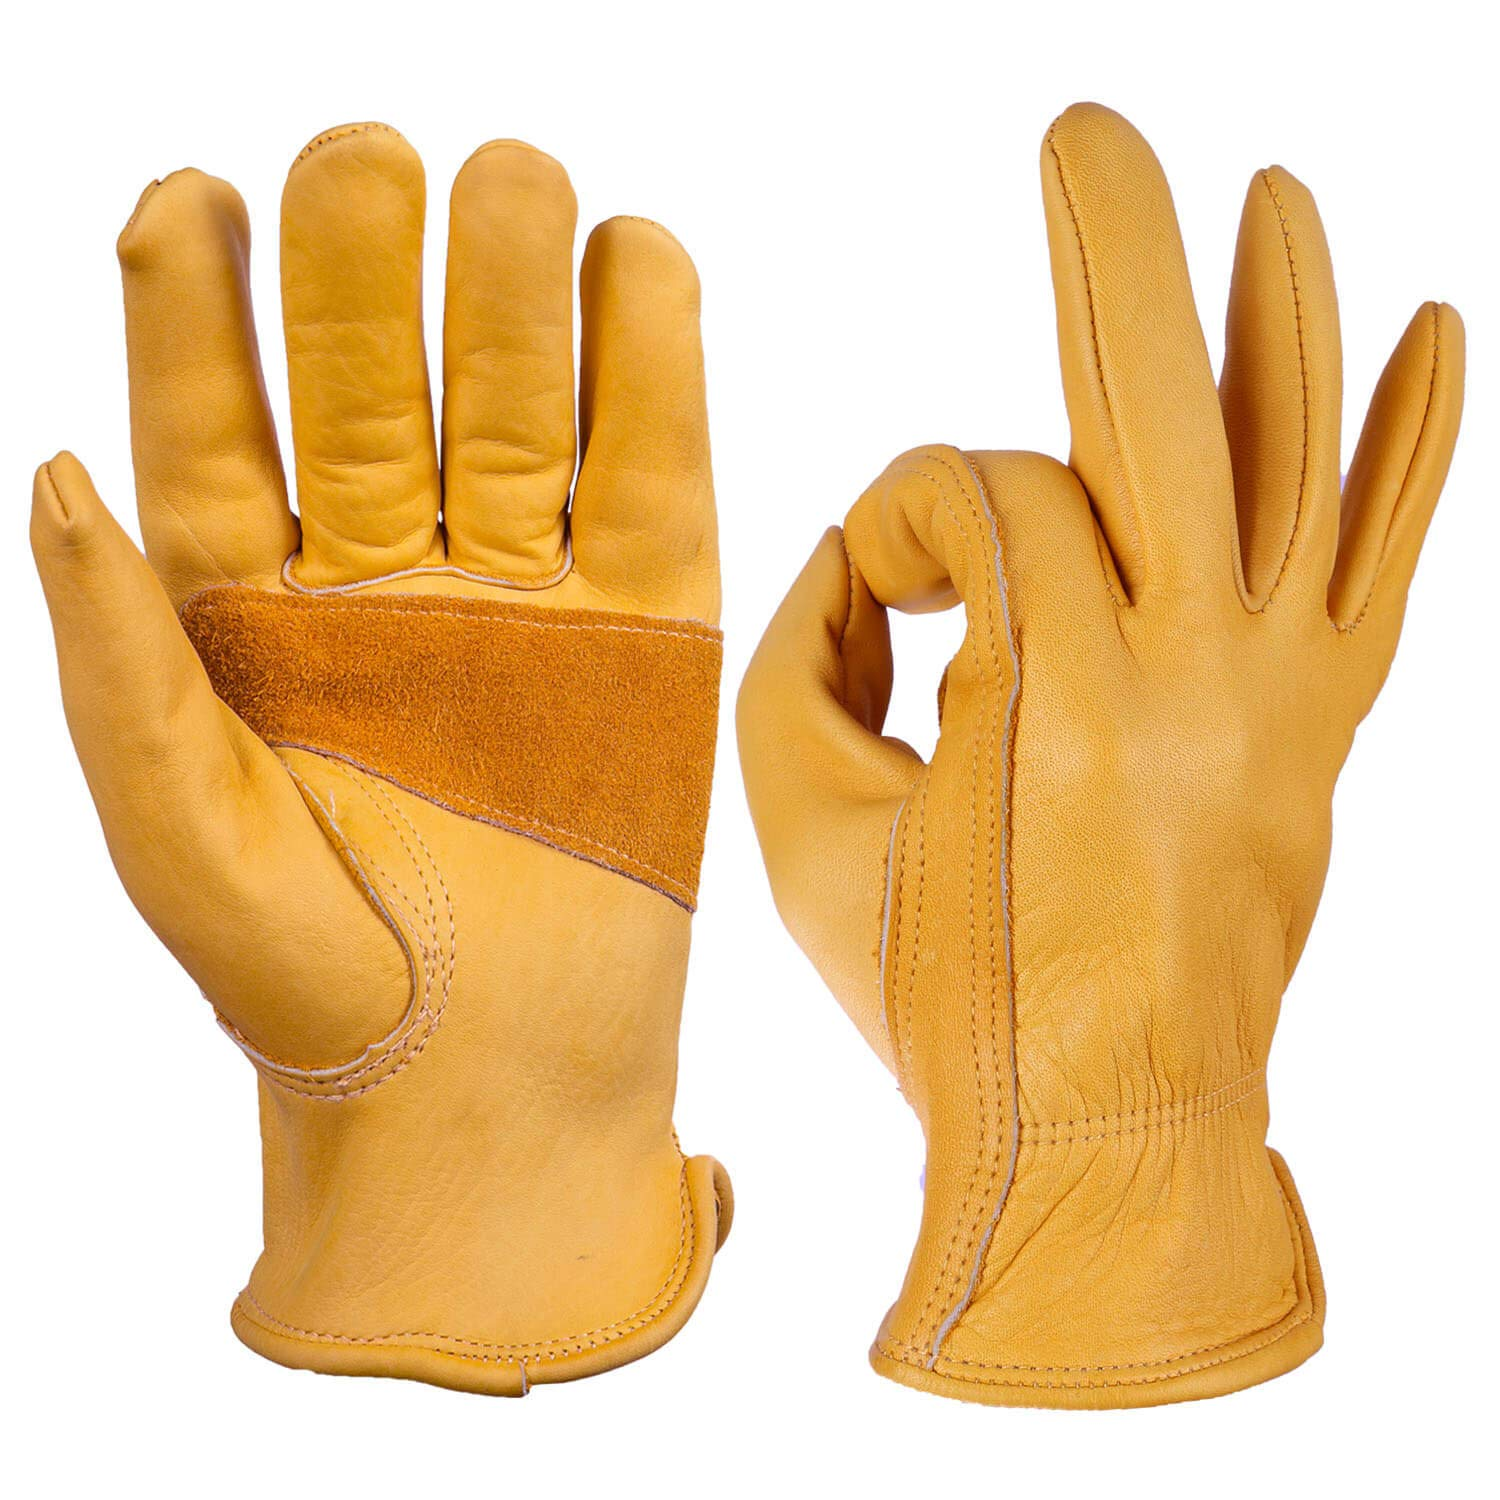 Real leather work gloves.